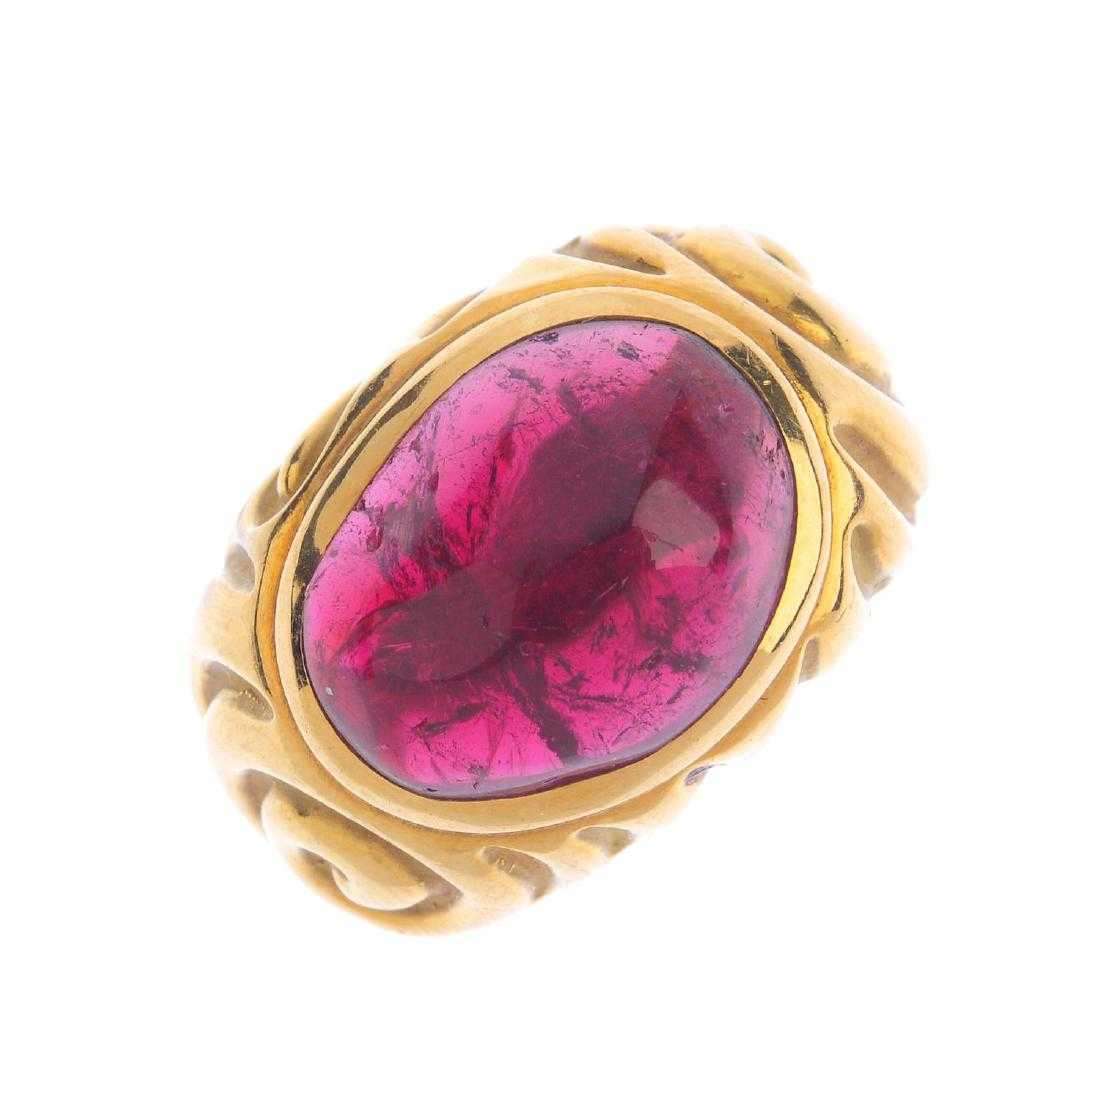 ELIZABETH GAGE - an 18ct gold tourmaline ring. The free